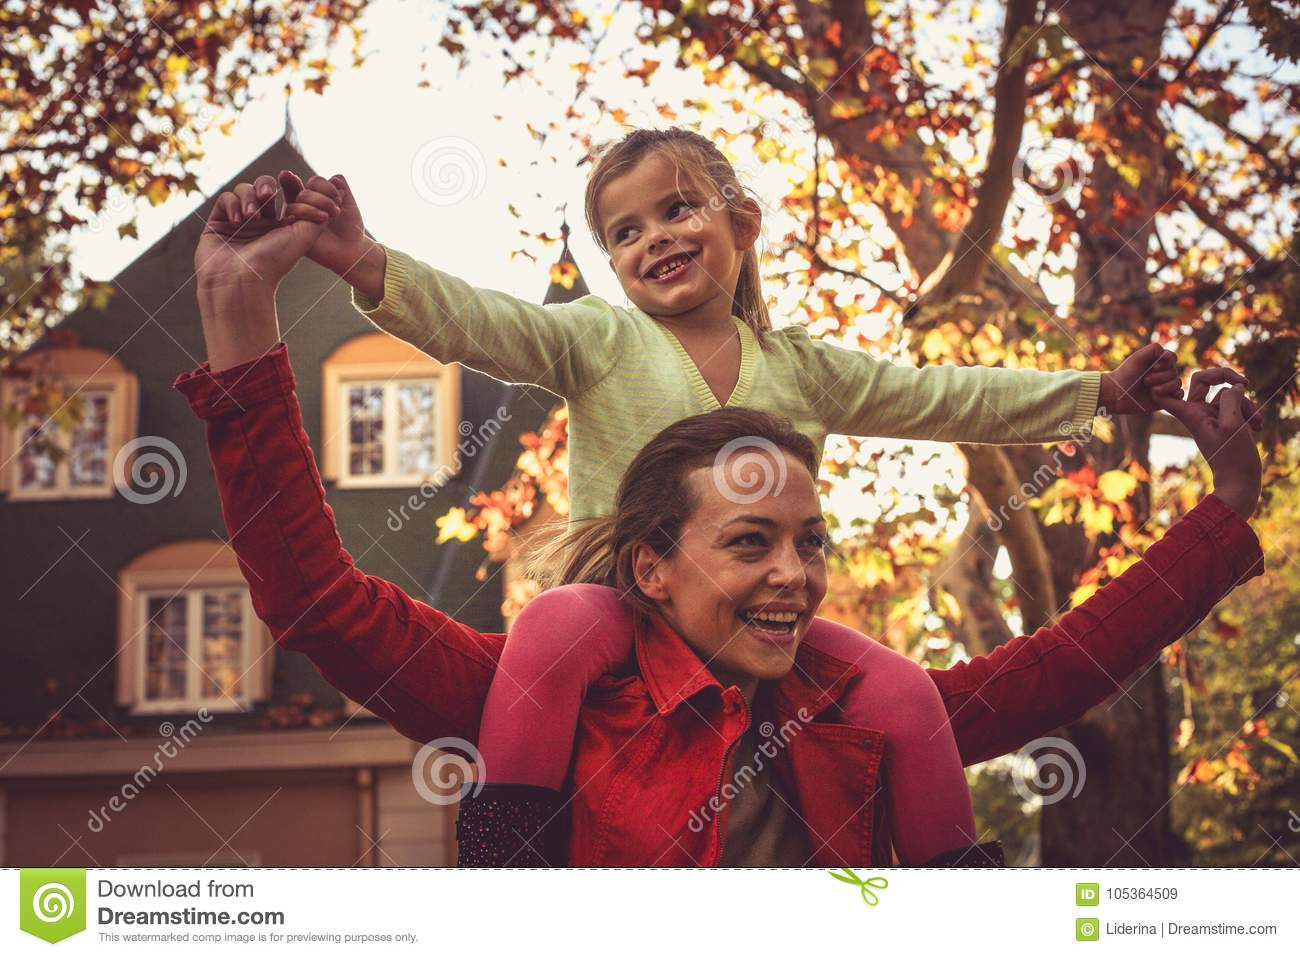 Mather with daughter enjoy in autumn season.